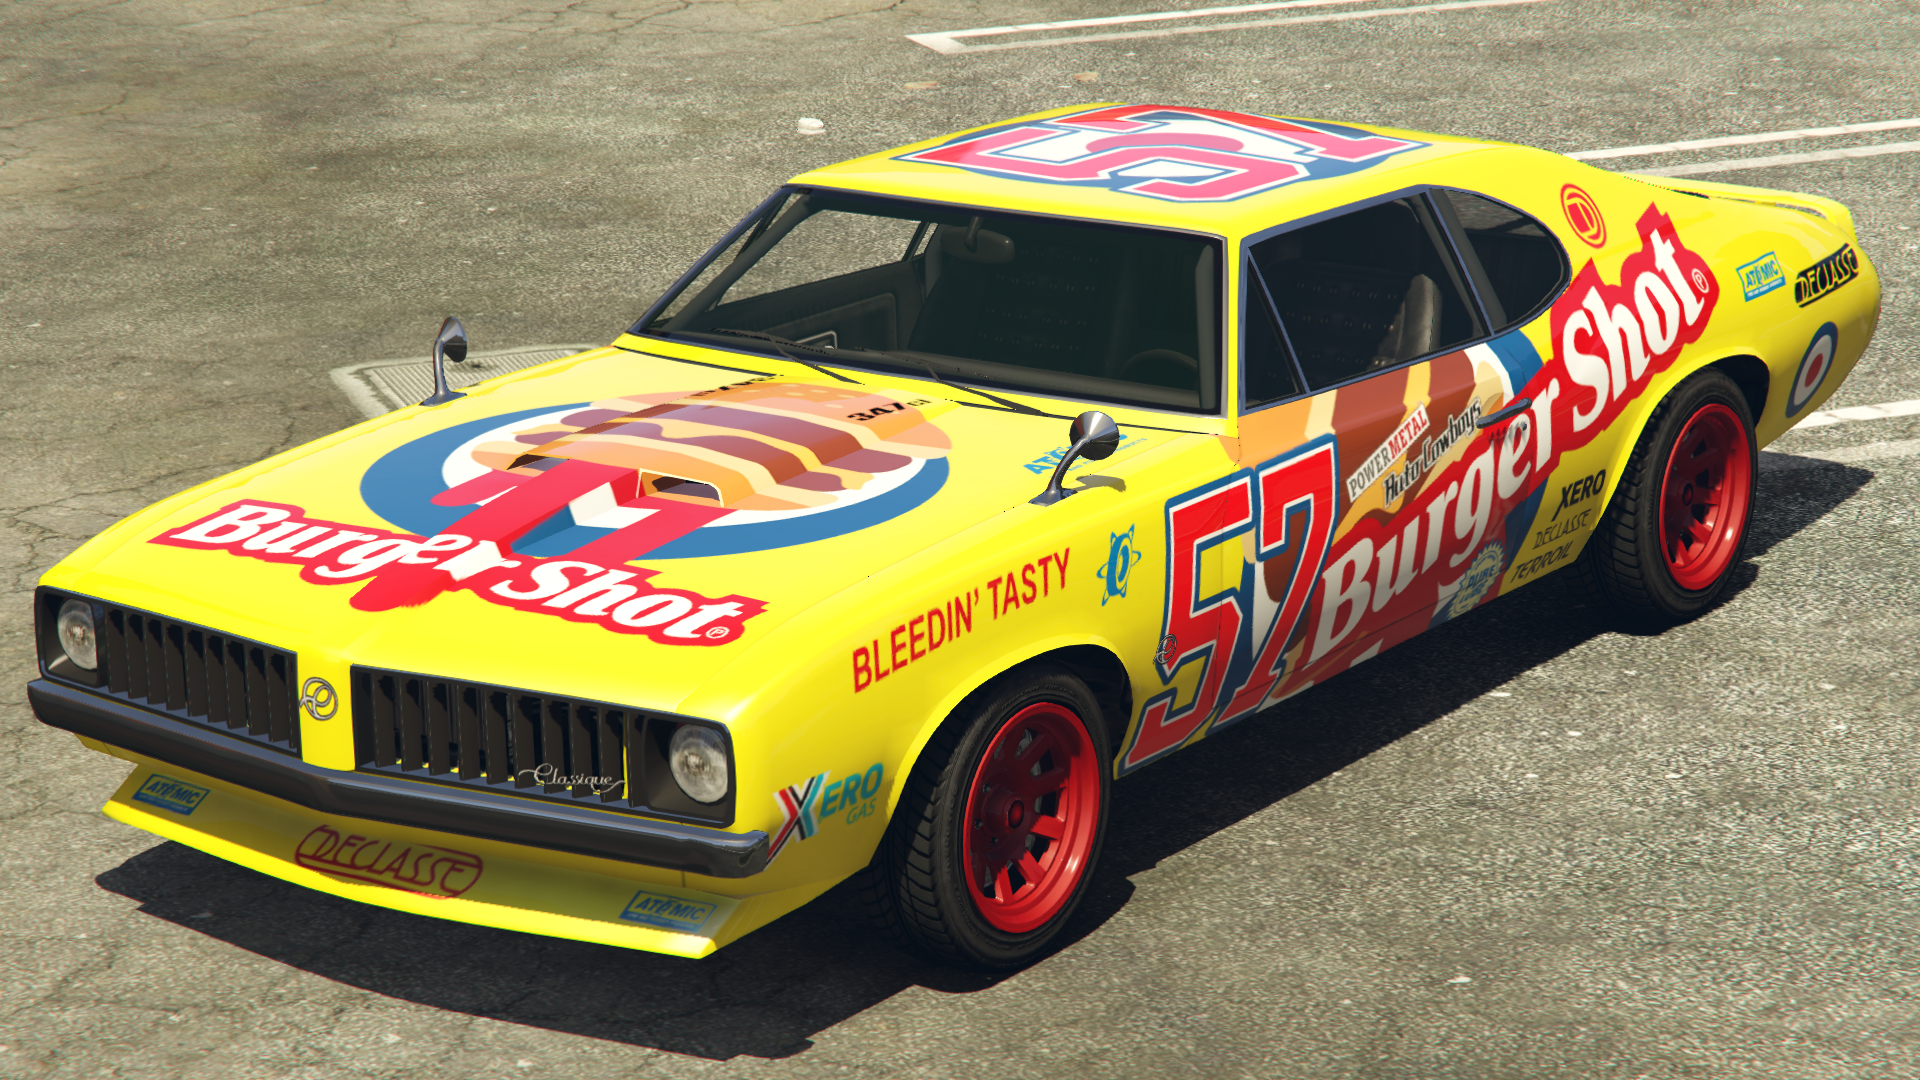 Burger Shot Stallion Gta Wiki Fandom Powered By Wikia